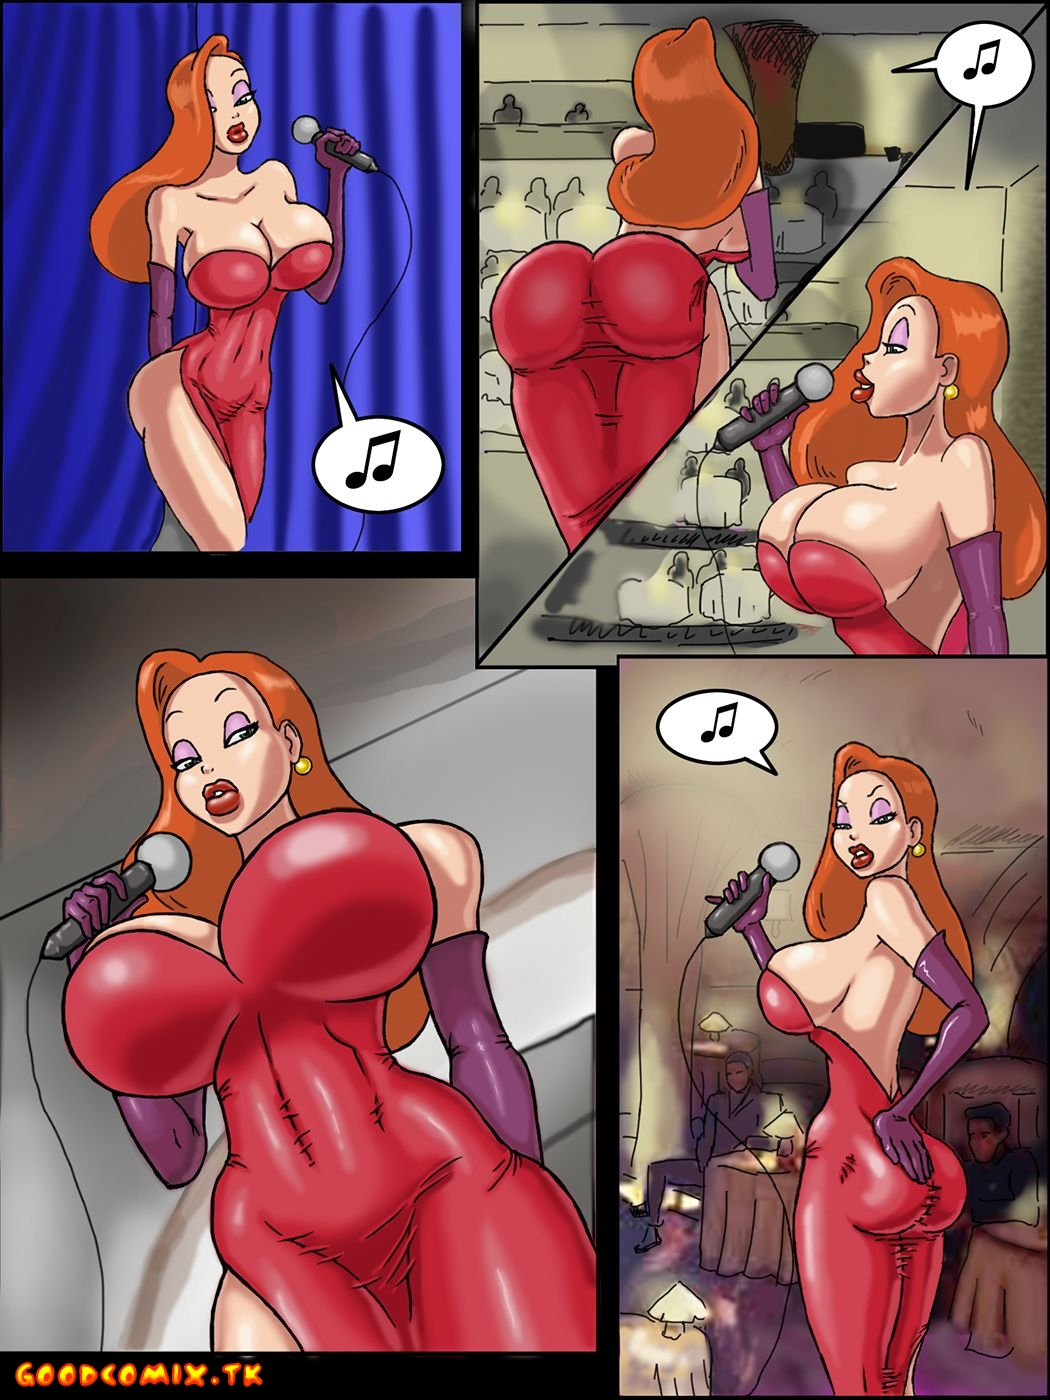 Goodcomix Who Censored Roger Rabbit - [Thetrigger123412] - Beauty and the Bouncer